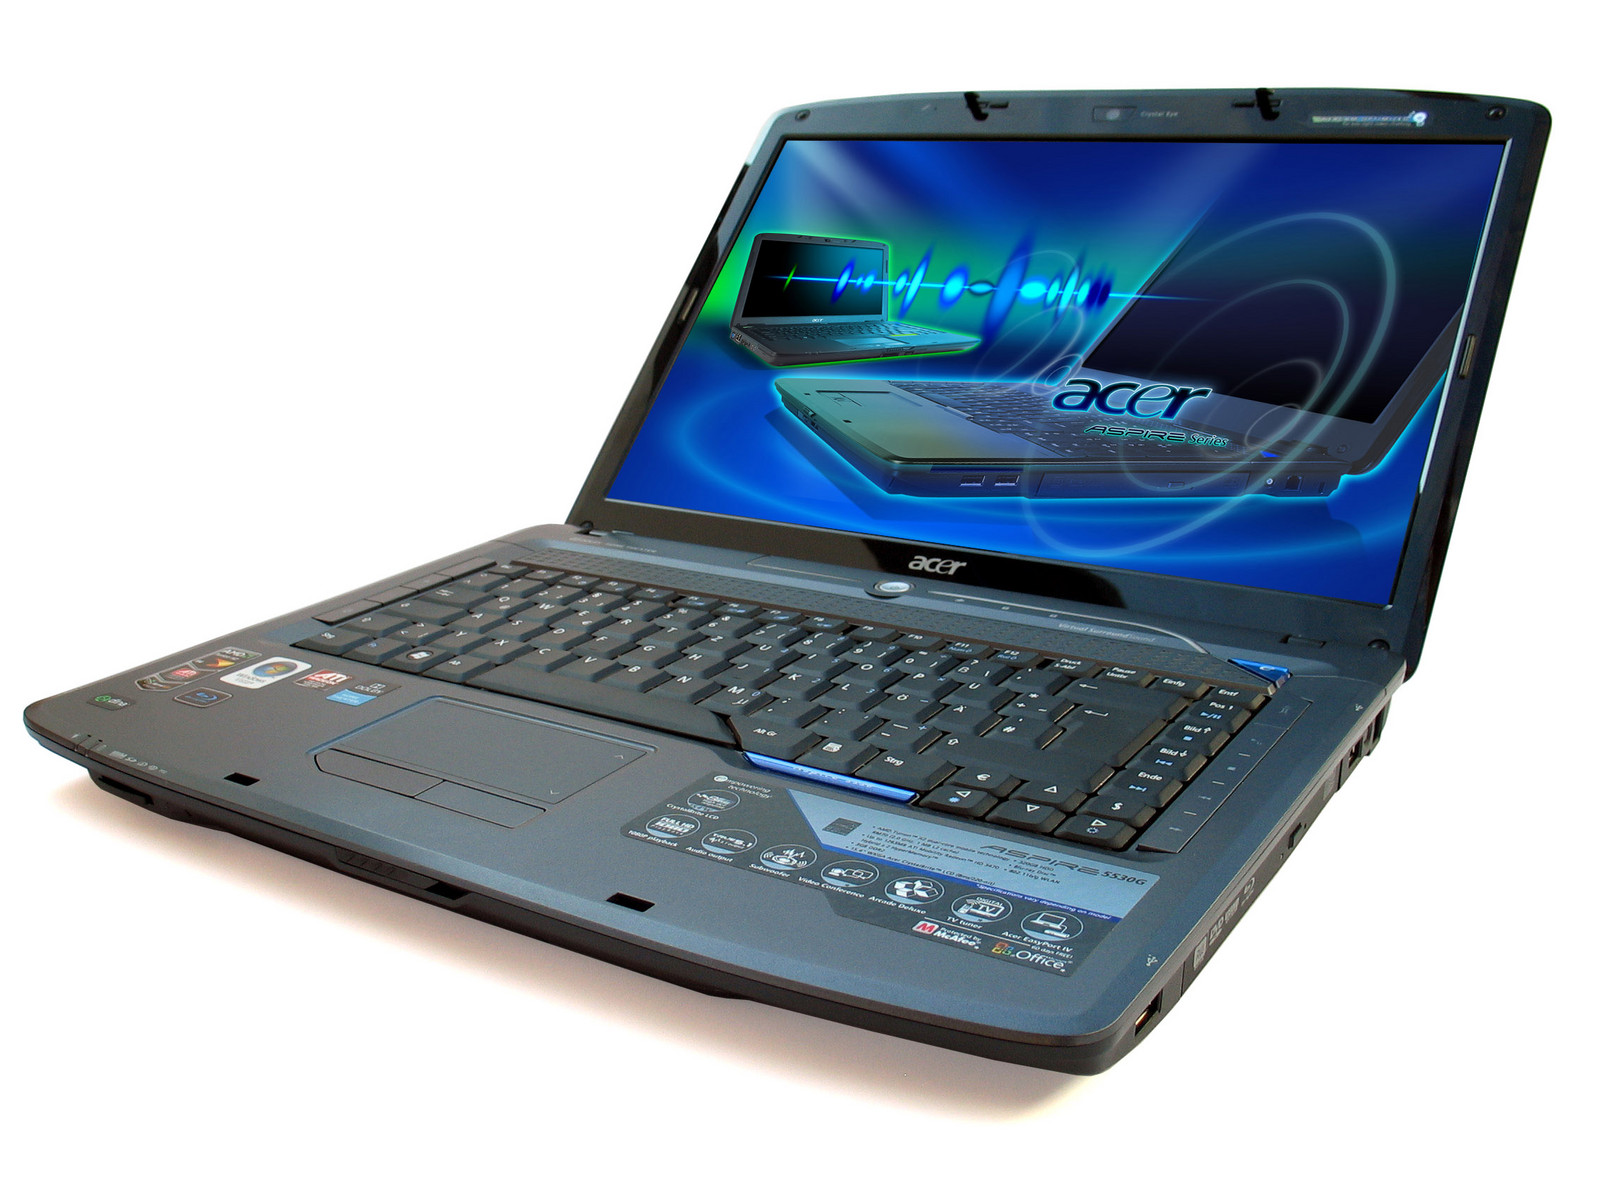 ACER ASPIRE 5736G AMD GRAPHICS DRIVERS PC